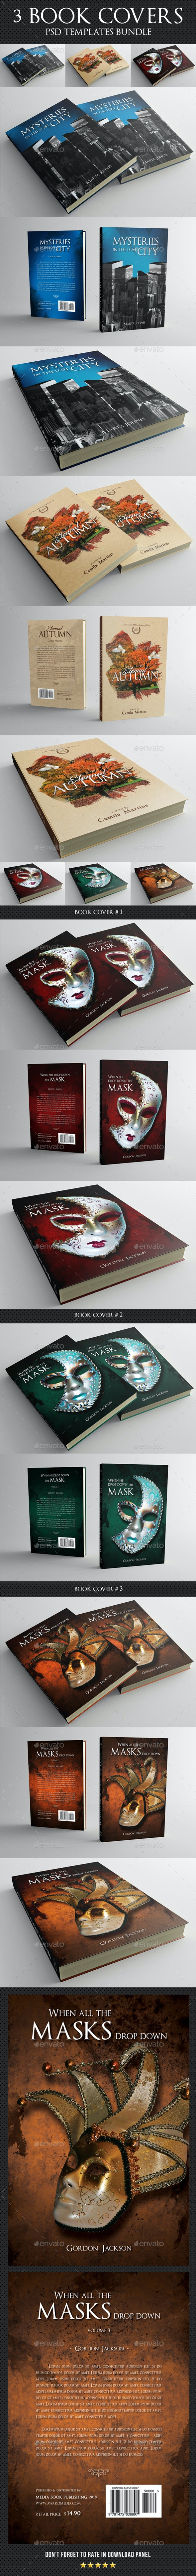 3 in 1 Book Cover Template Bundle 14 - Miscellaneous Print Templates